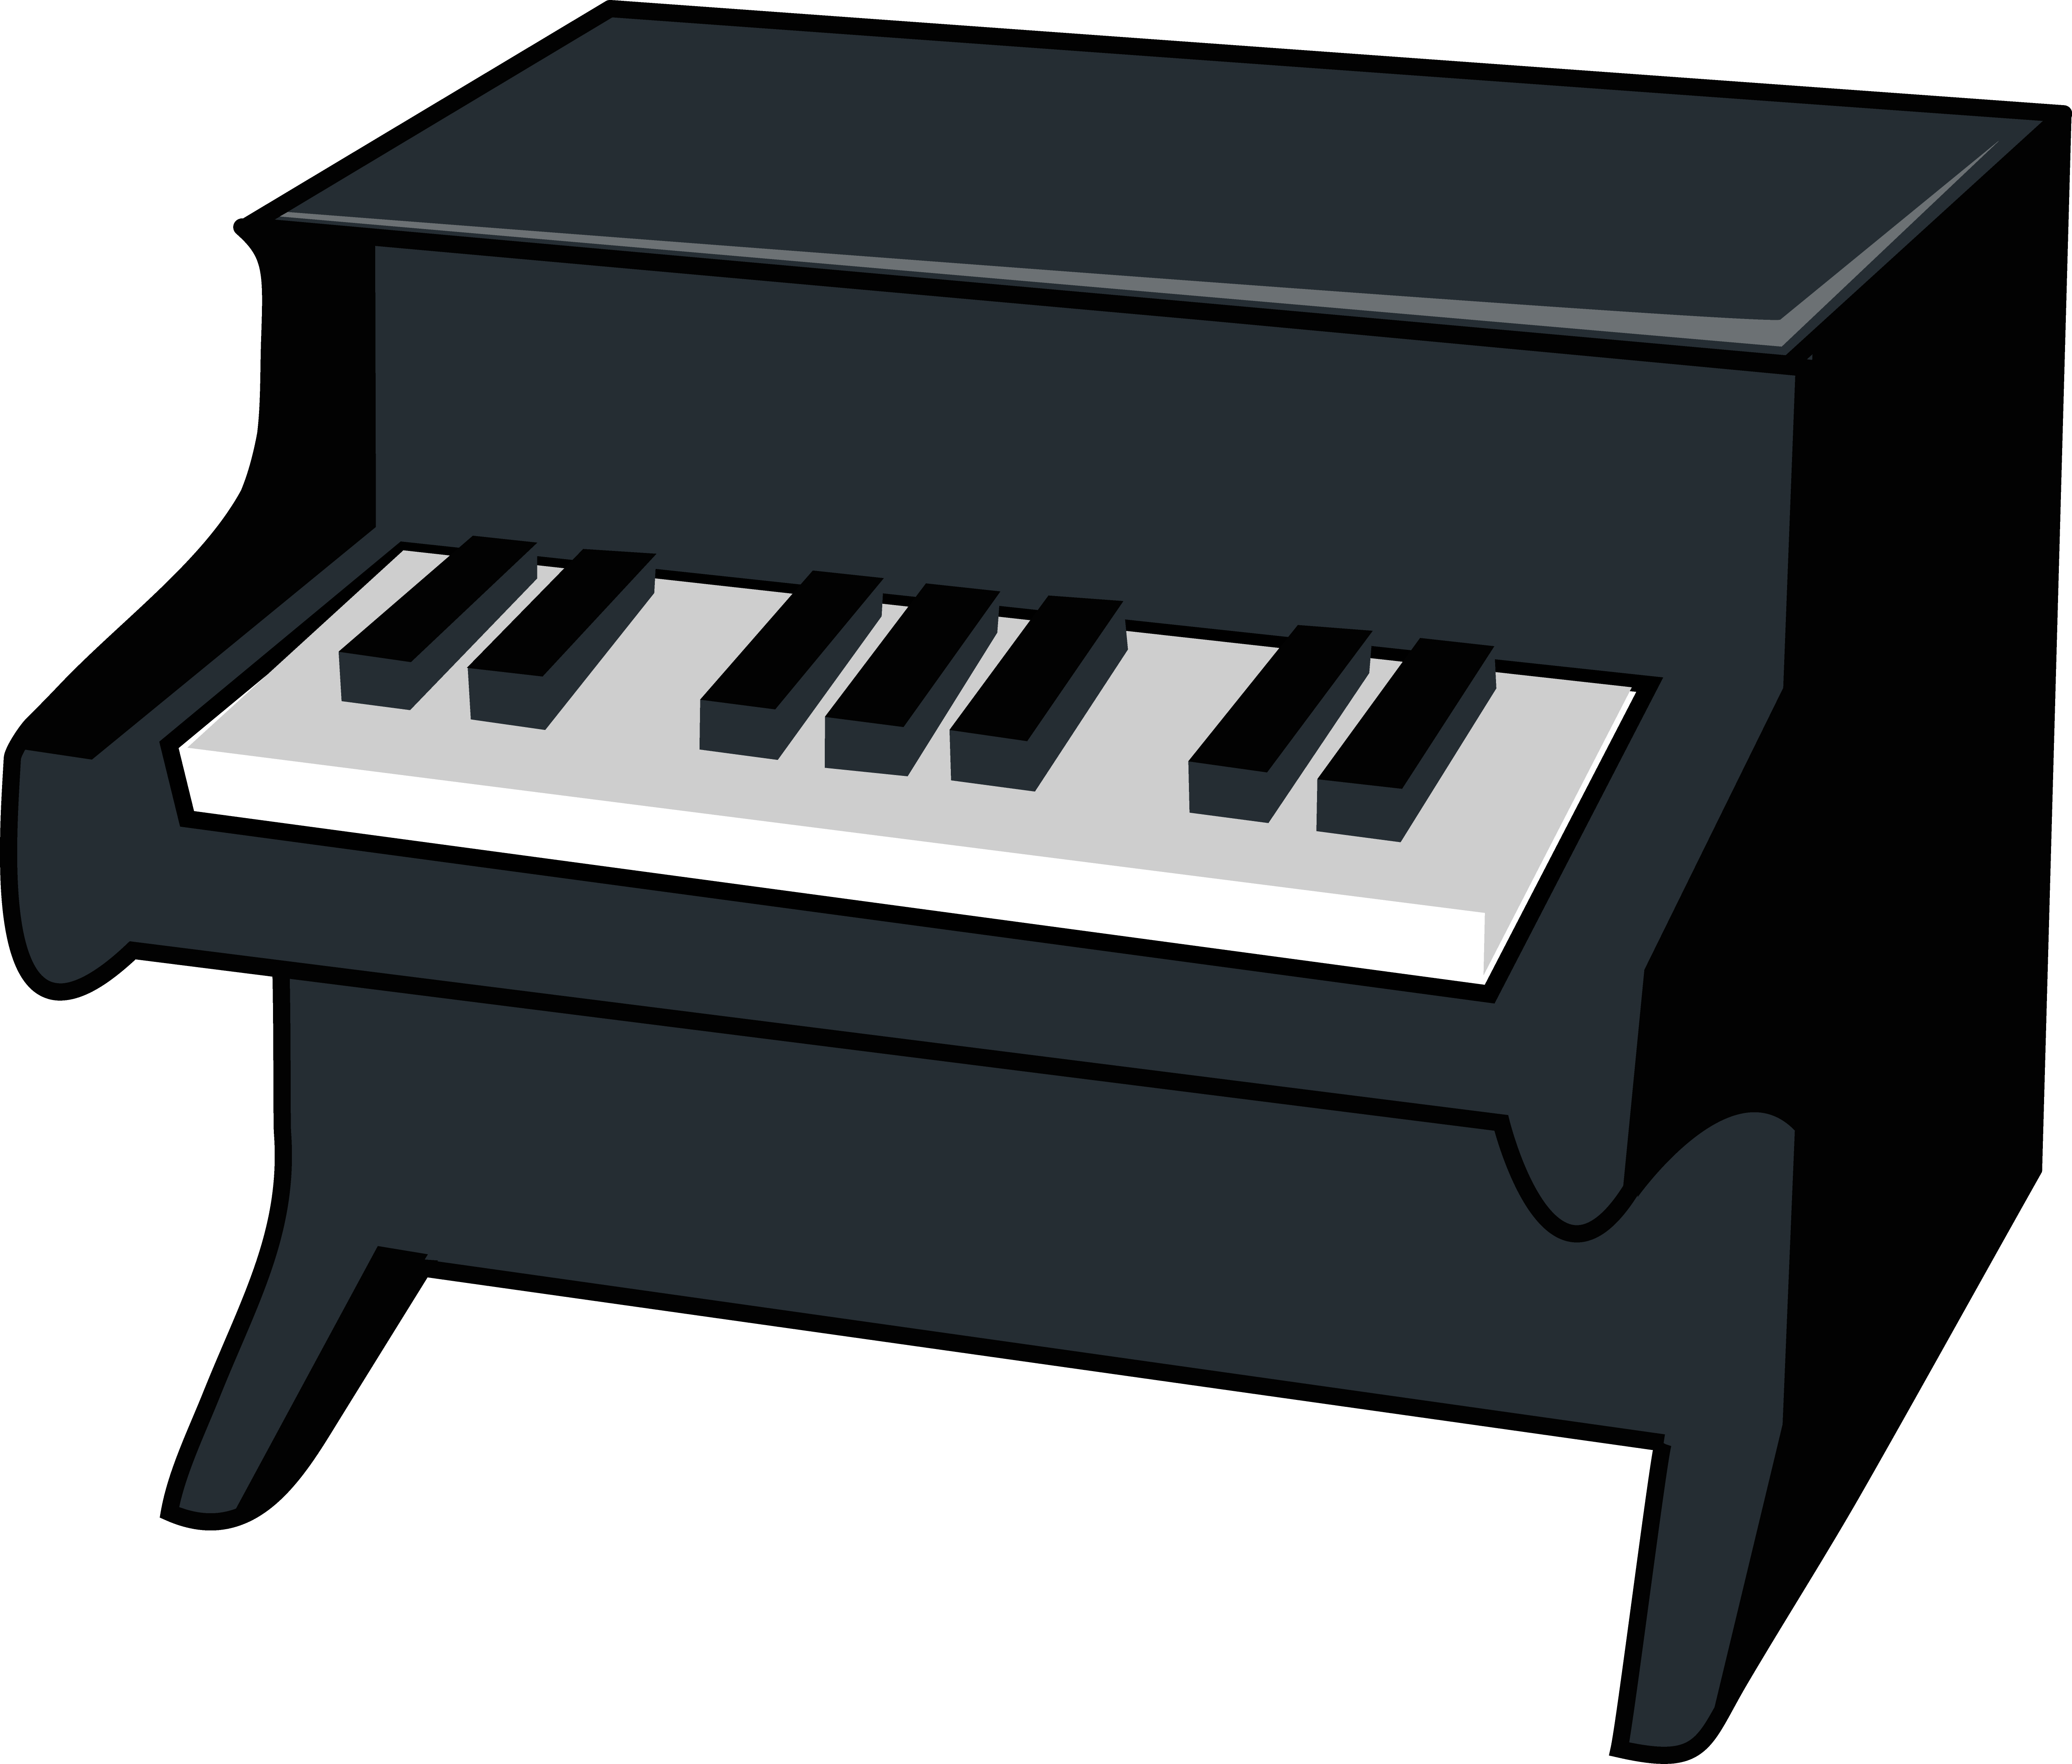 5047x4297 Piano Keyboard Clipart Free Images